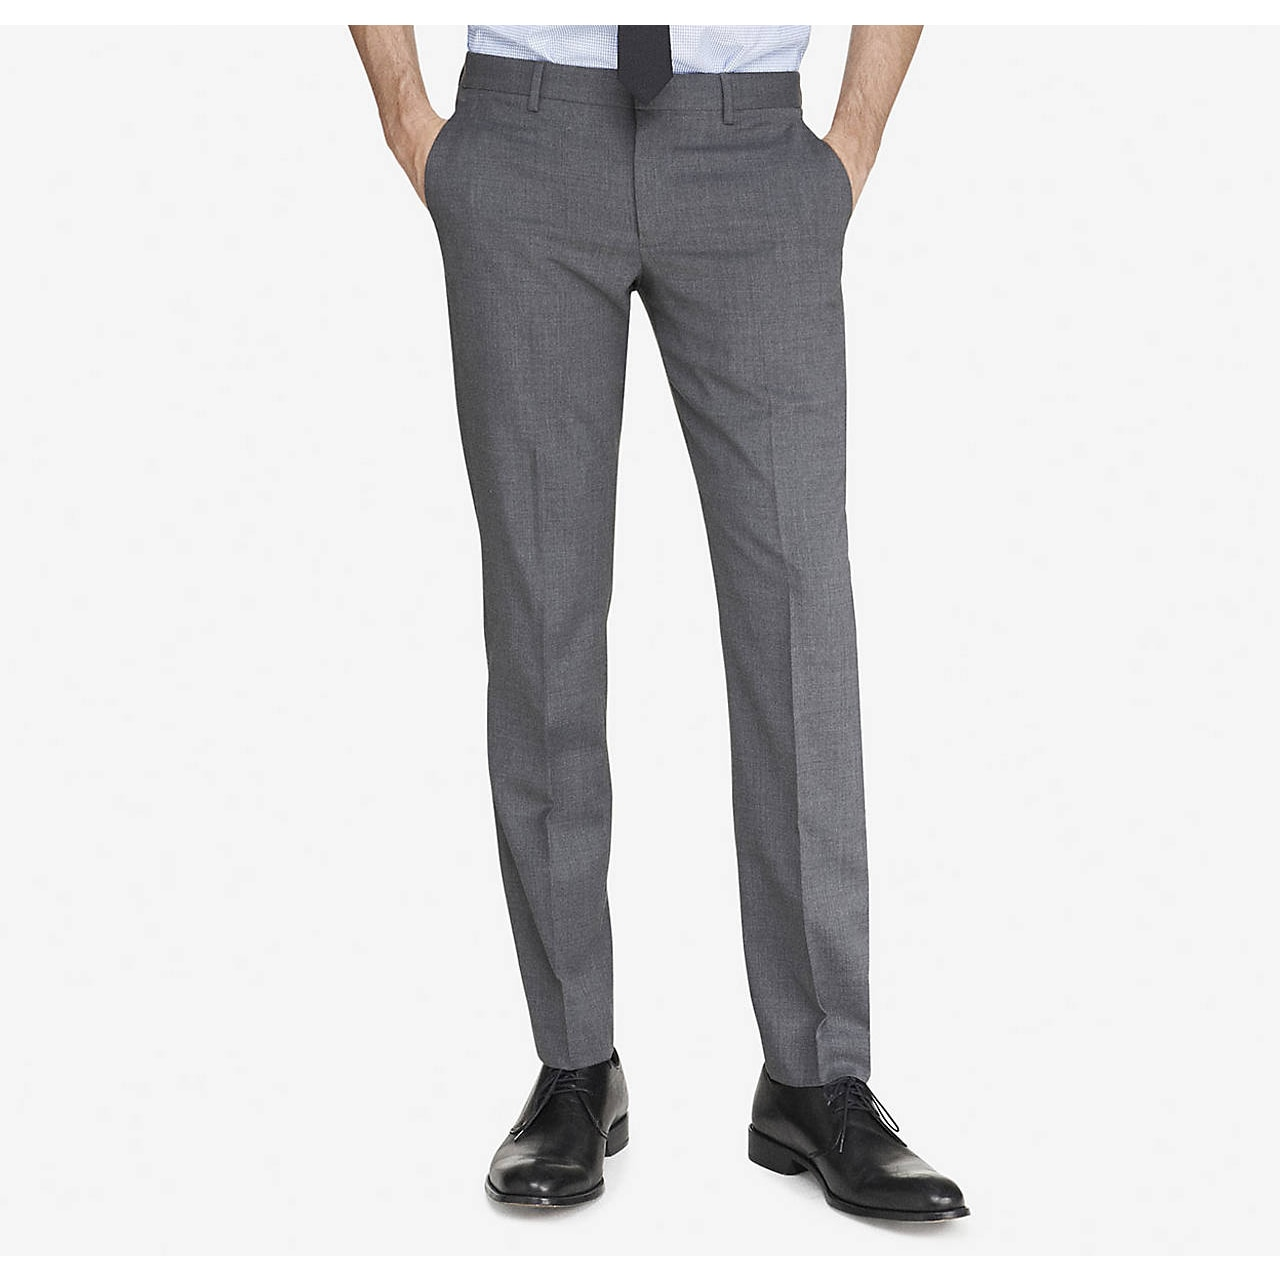 a26ae49da55879 Shop Elie Balleh Men's Slim Fit Dress Pants - On Sale - Free ...